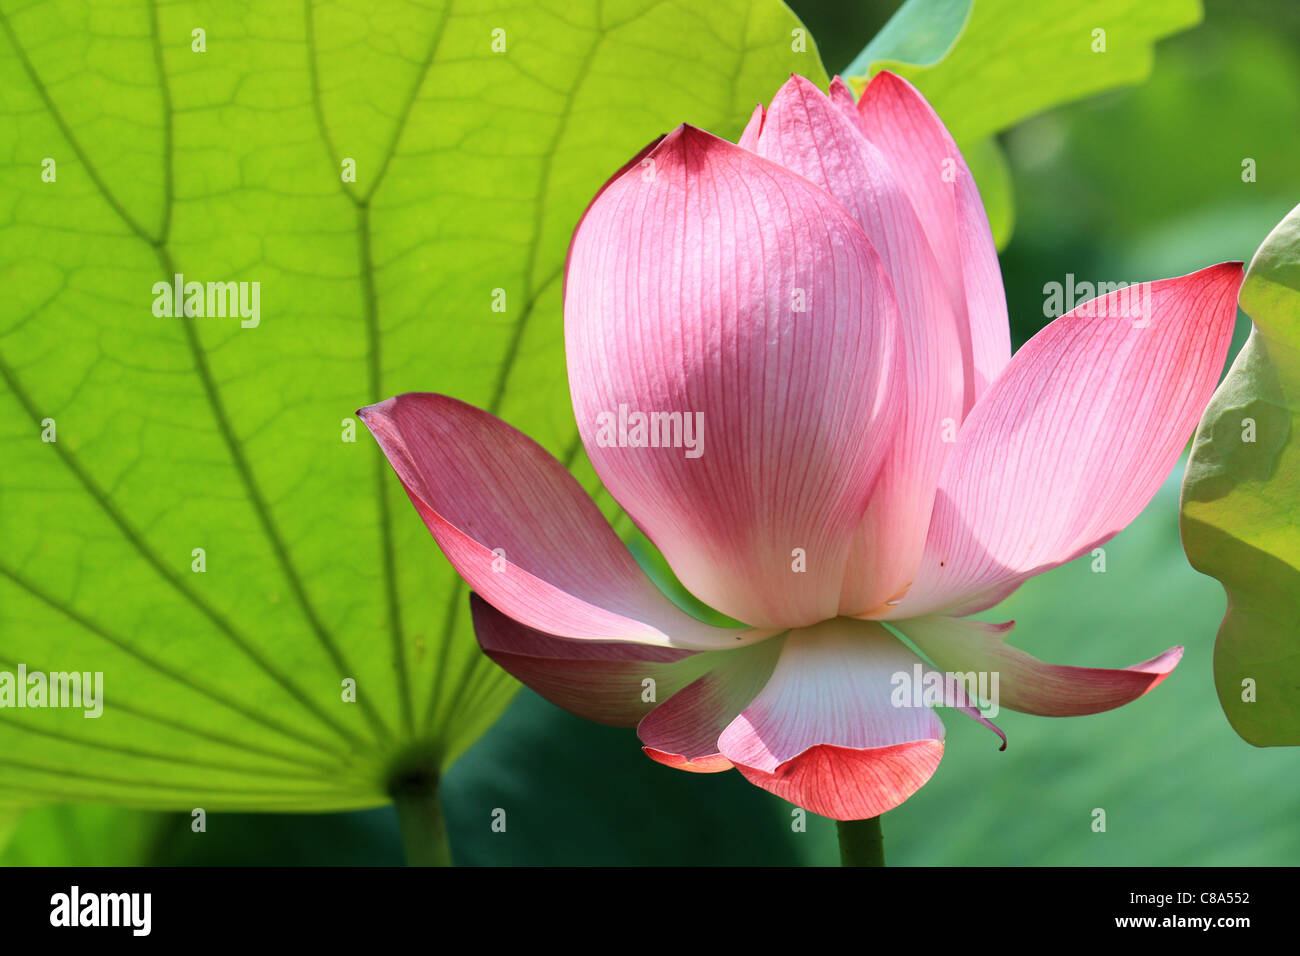 A chinese lotus flower in bud china stock photo 39561566 alamy a chinese lotus flower in bud china izmirmasajfo